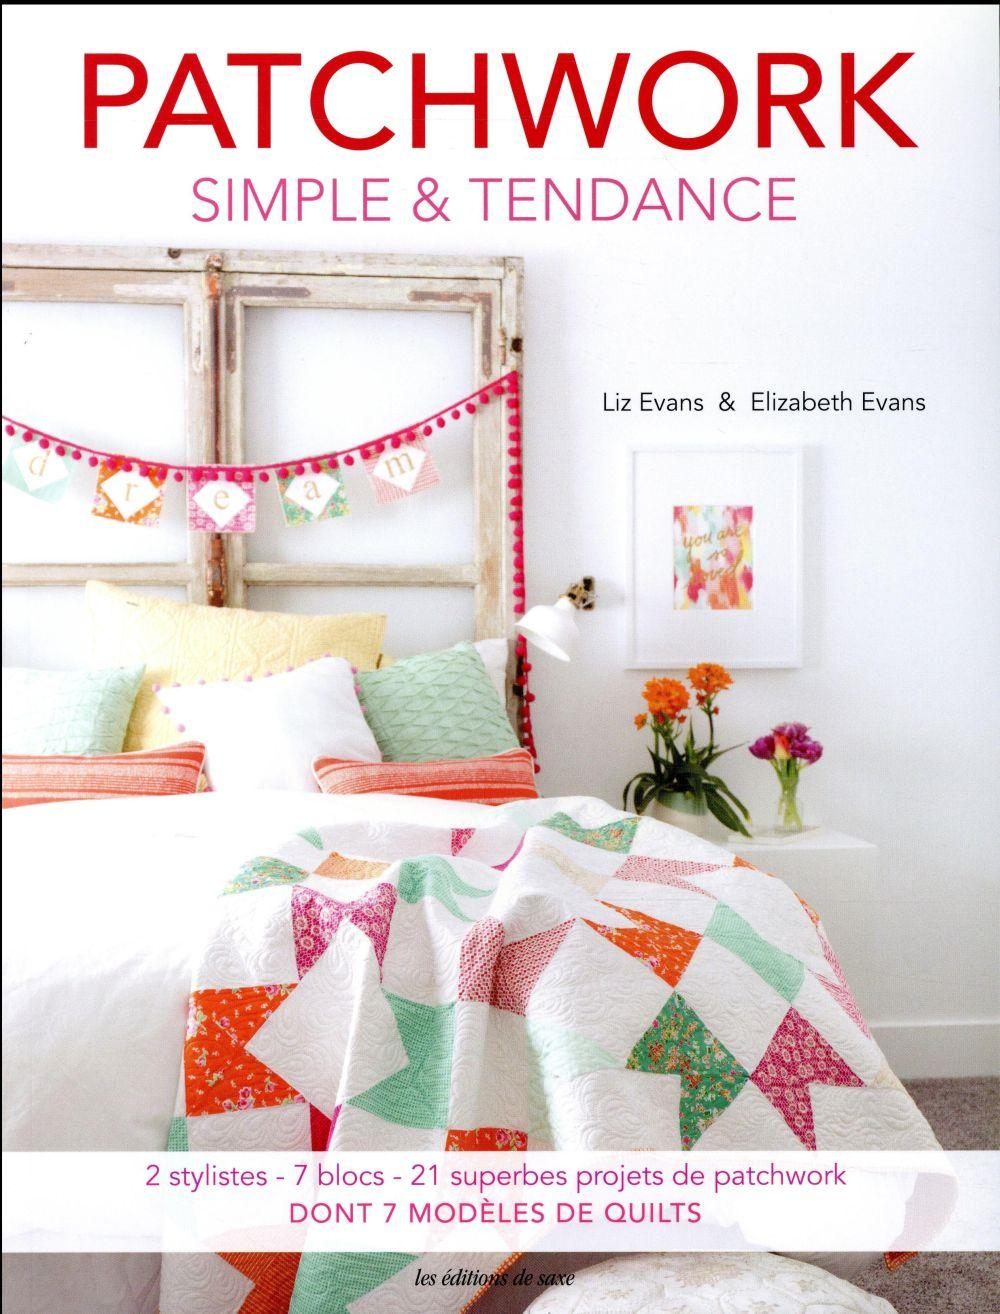 Patchwork ; simple & tendance  - Elizabeth Evans  - Liz Evans